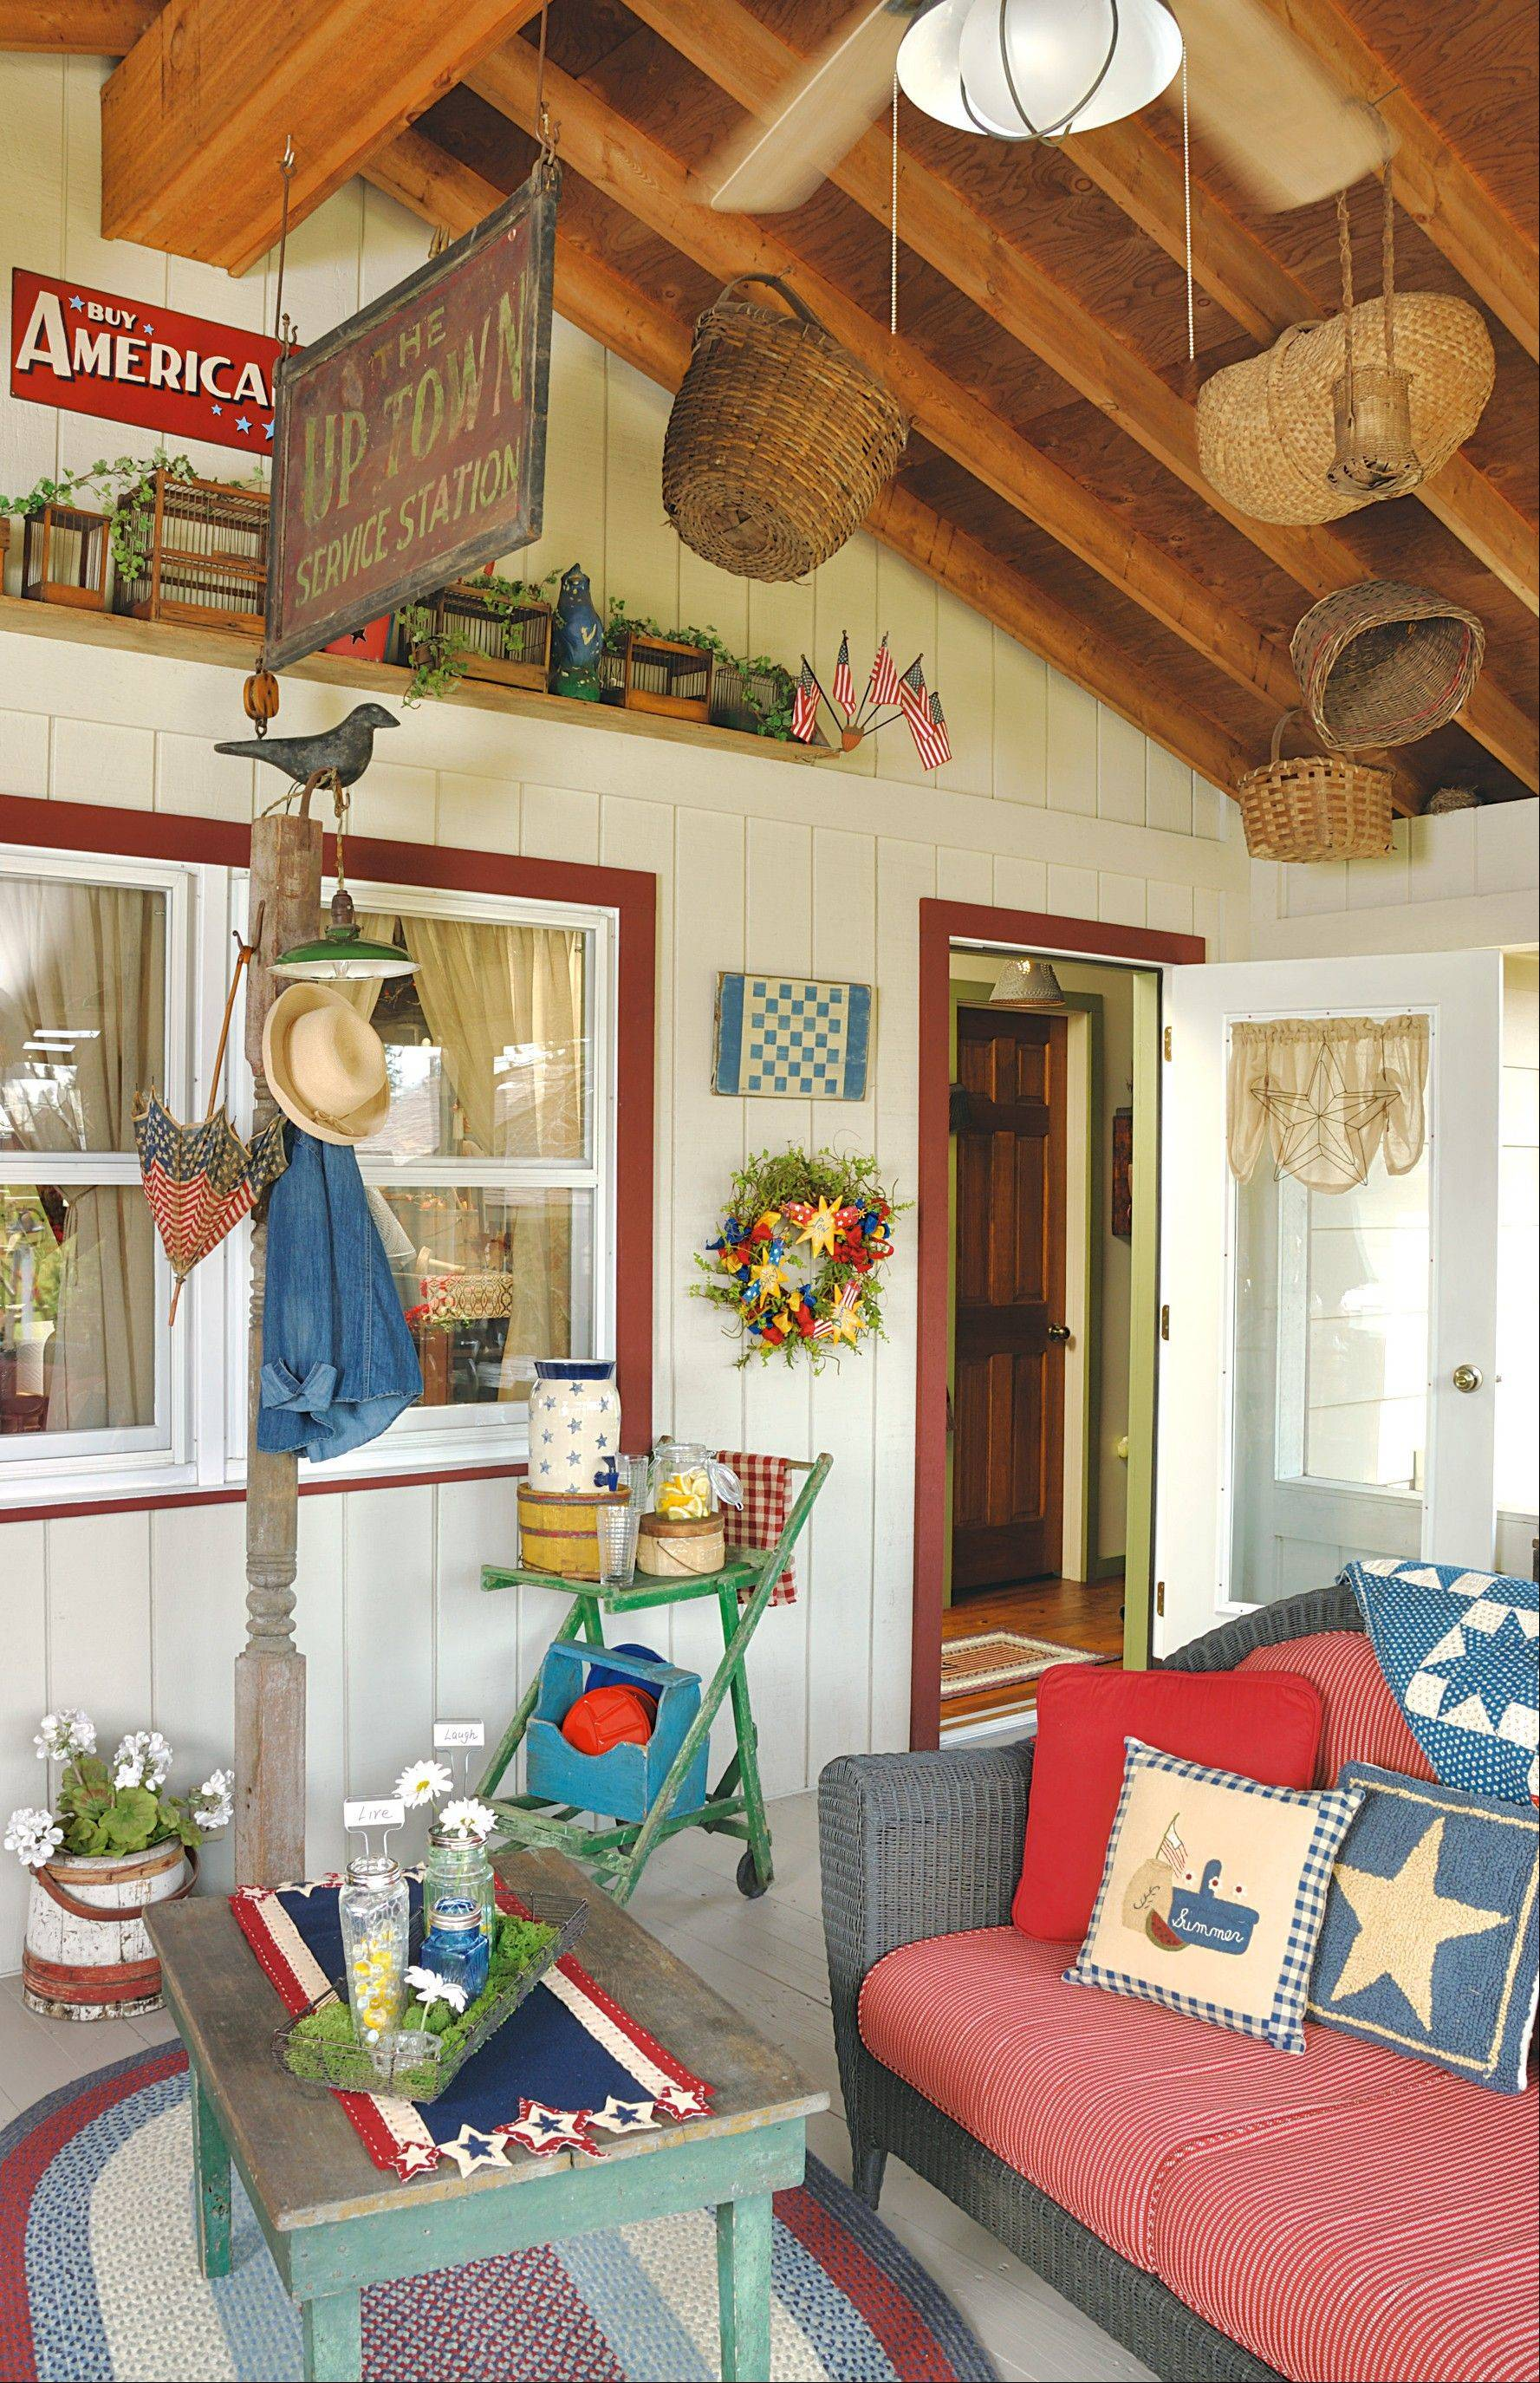 The vaulted ceiling is a perfect place for displaying treasures like antique signs and baskets.